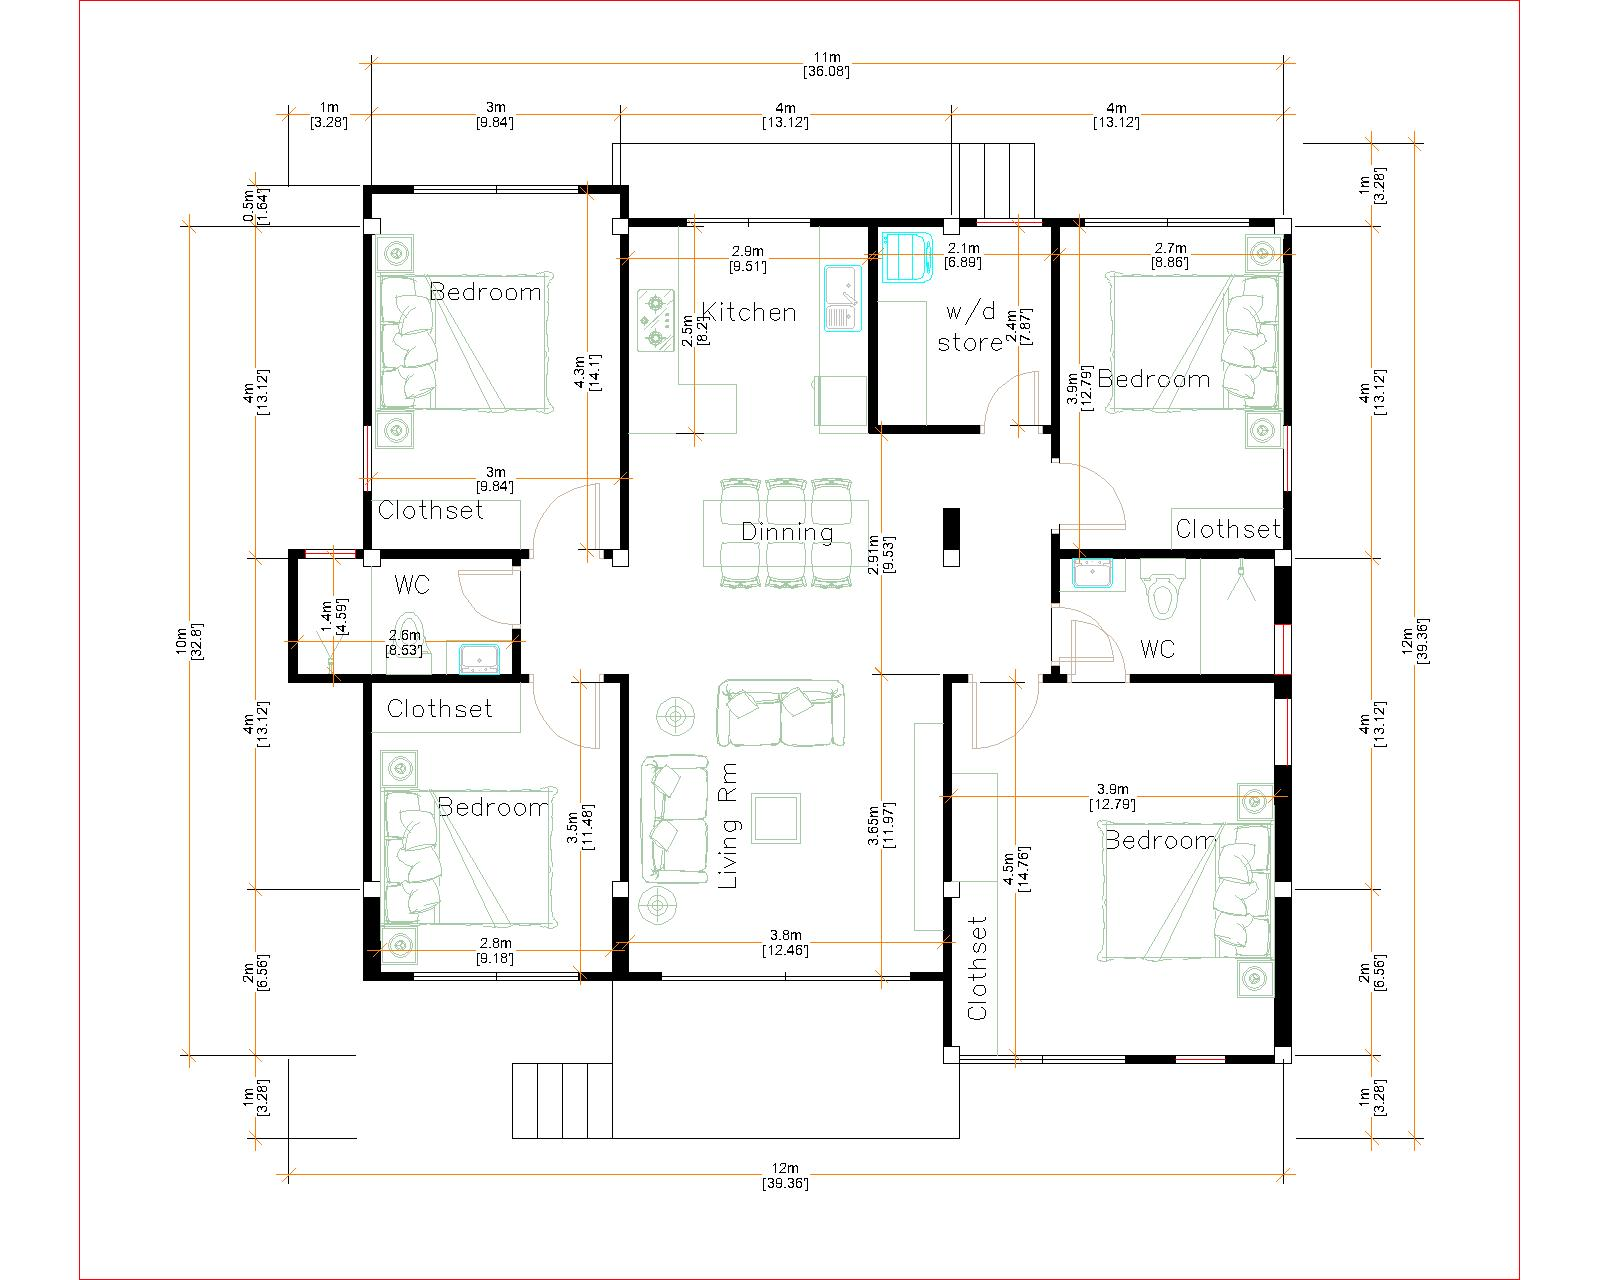 House Plans 12x12 Meter 4 Bedrooms Hip roof 40x40 Feet